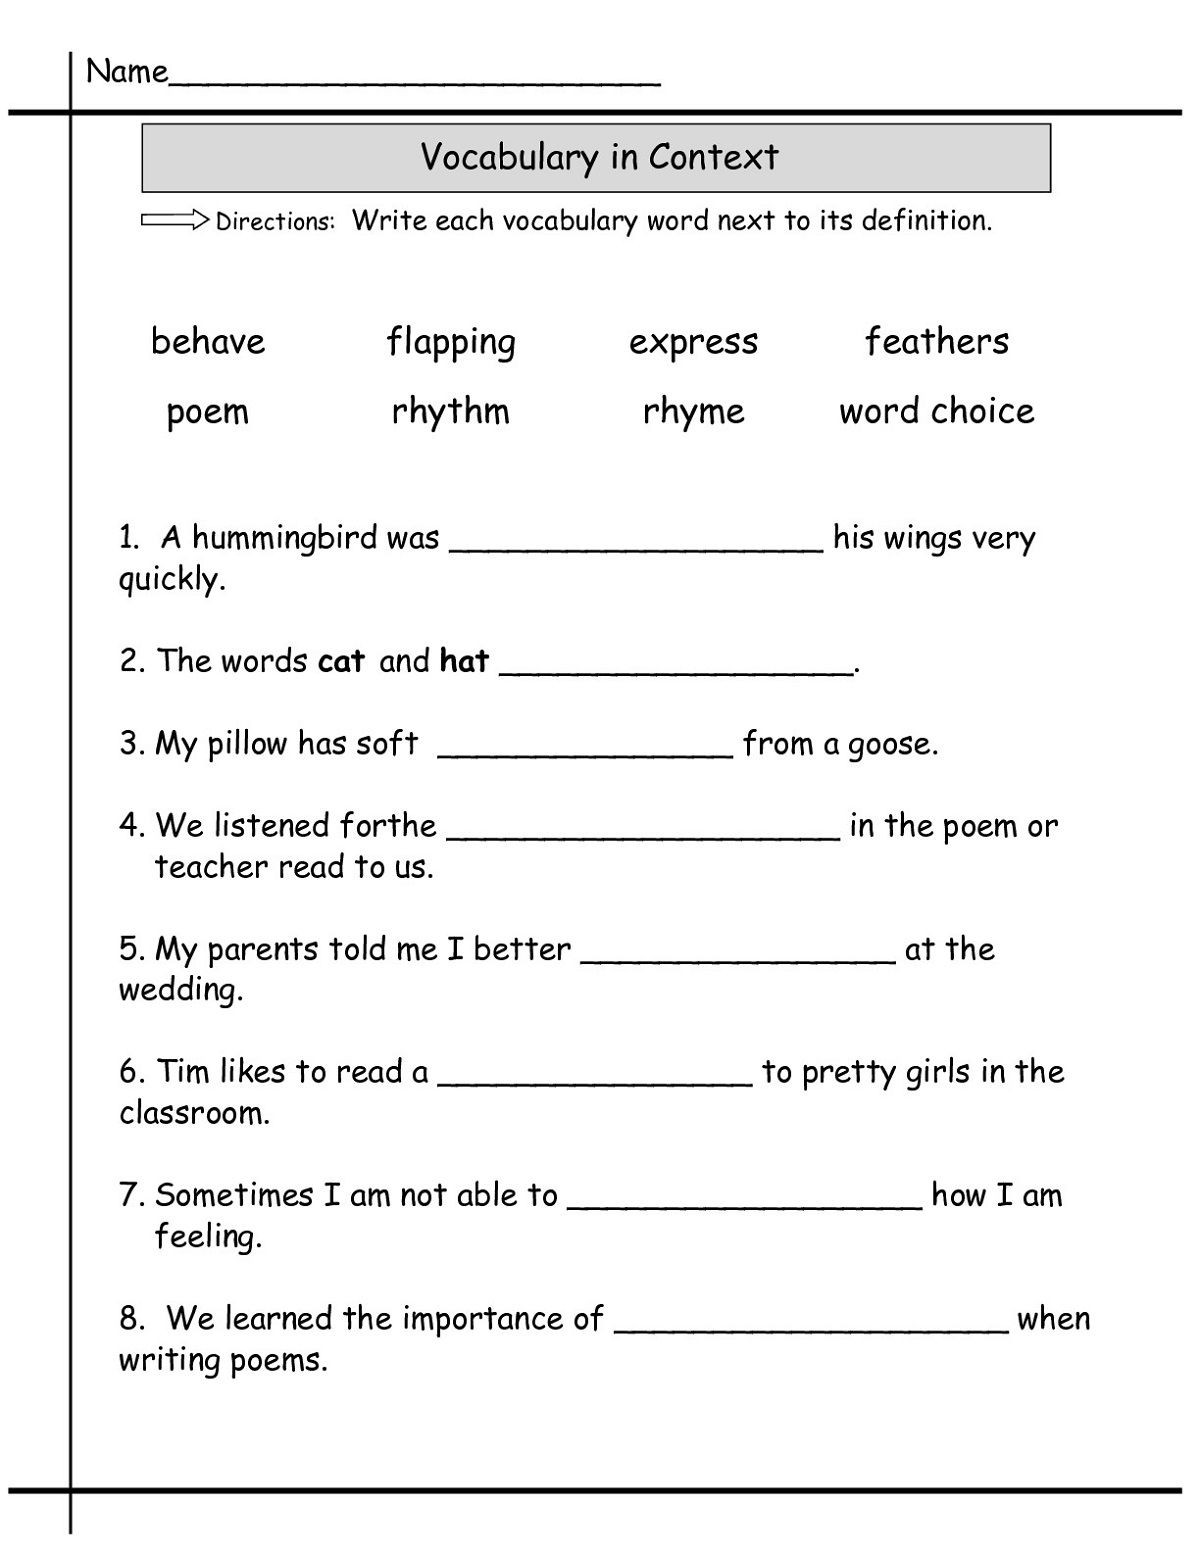 Phonics Worksheets Grade 3 Math Worksheet 2nd Grade Phonics Worksheets Math Worksheet